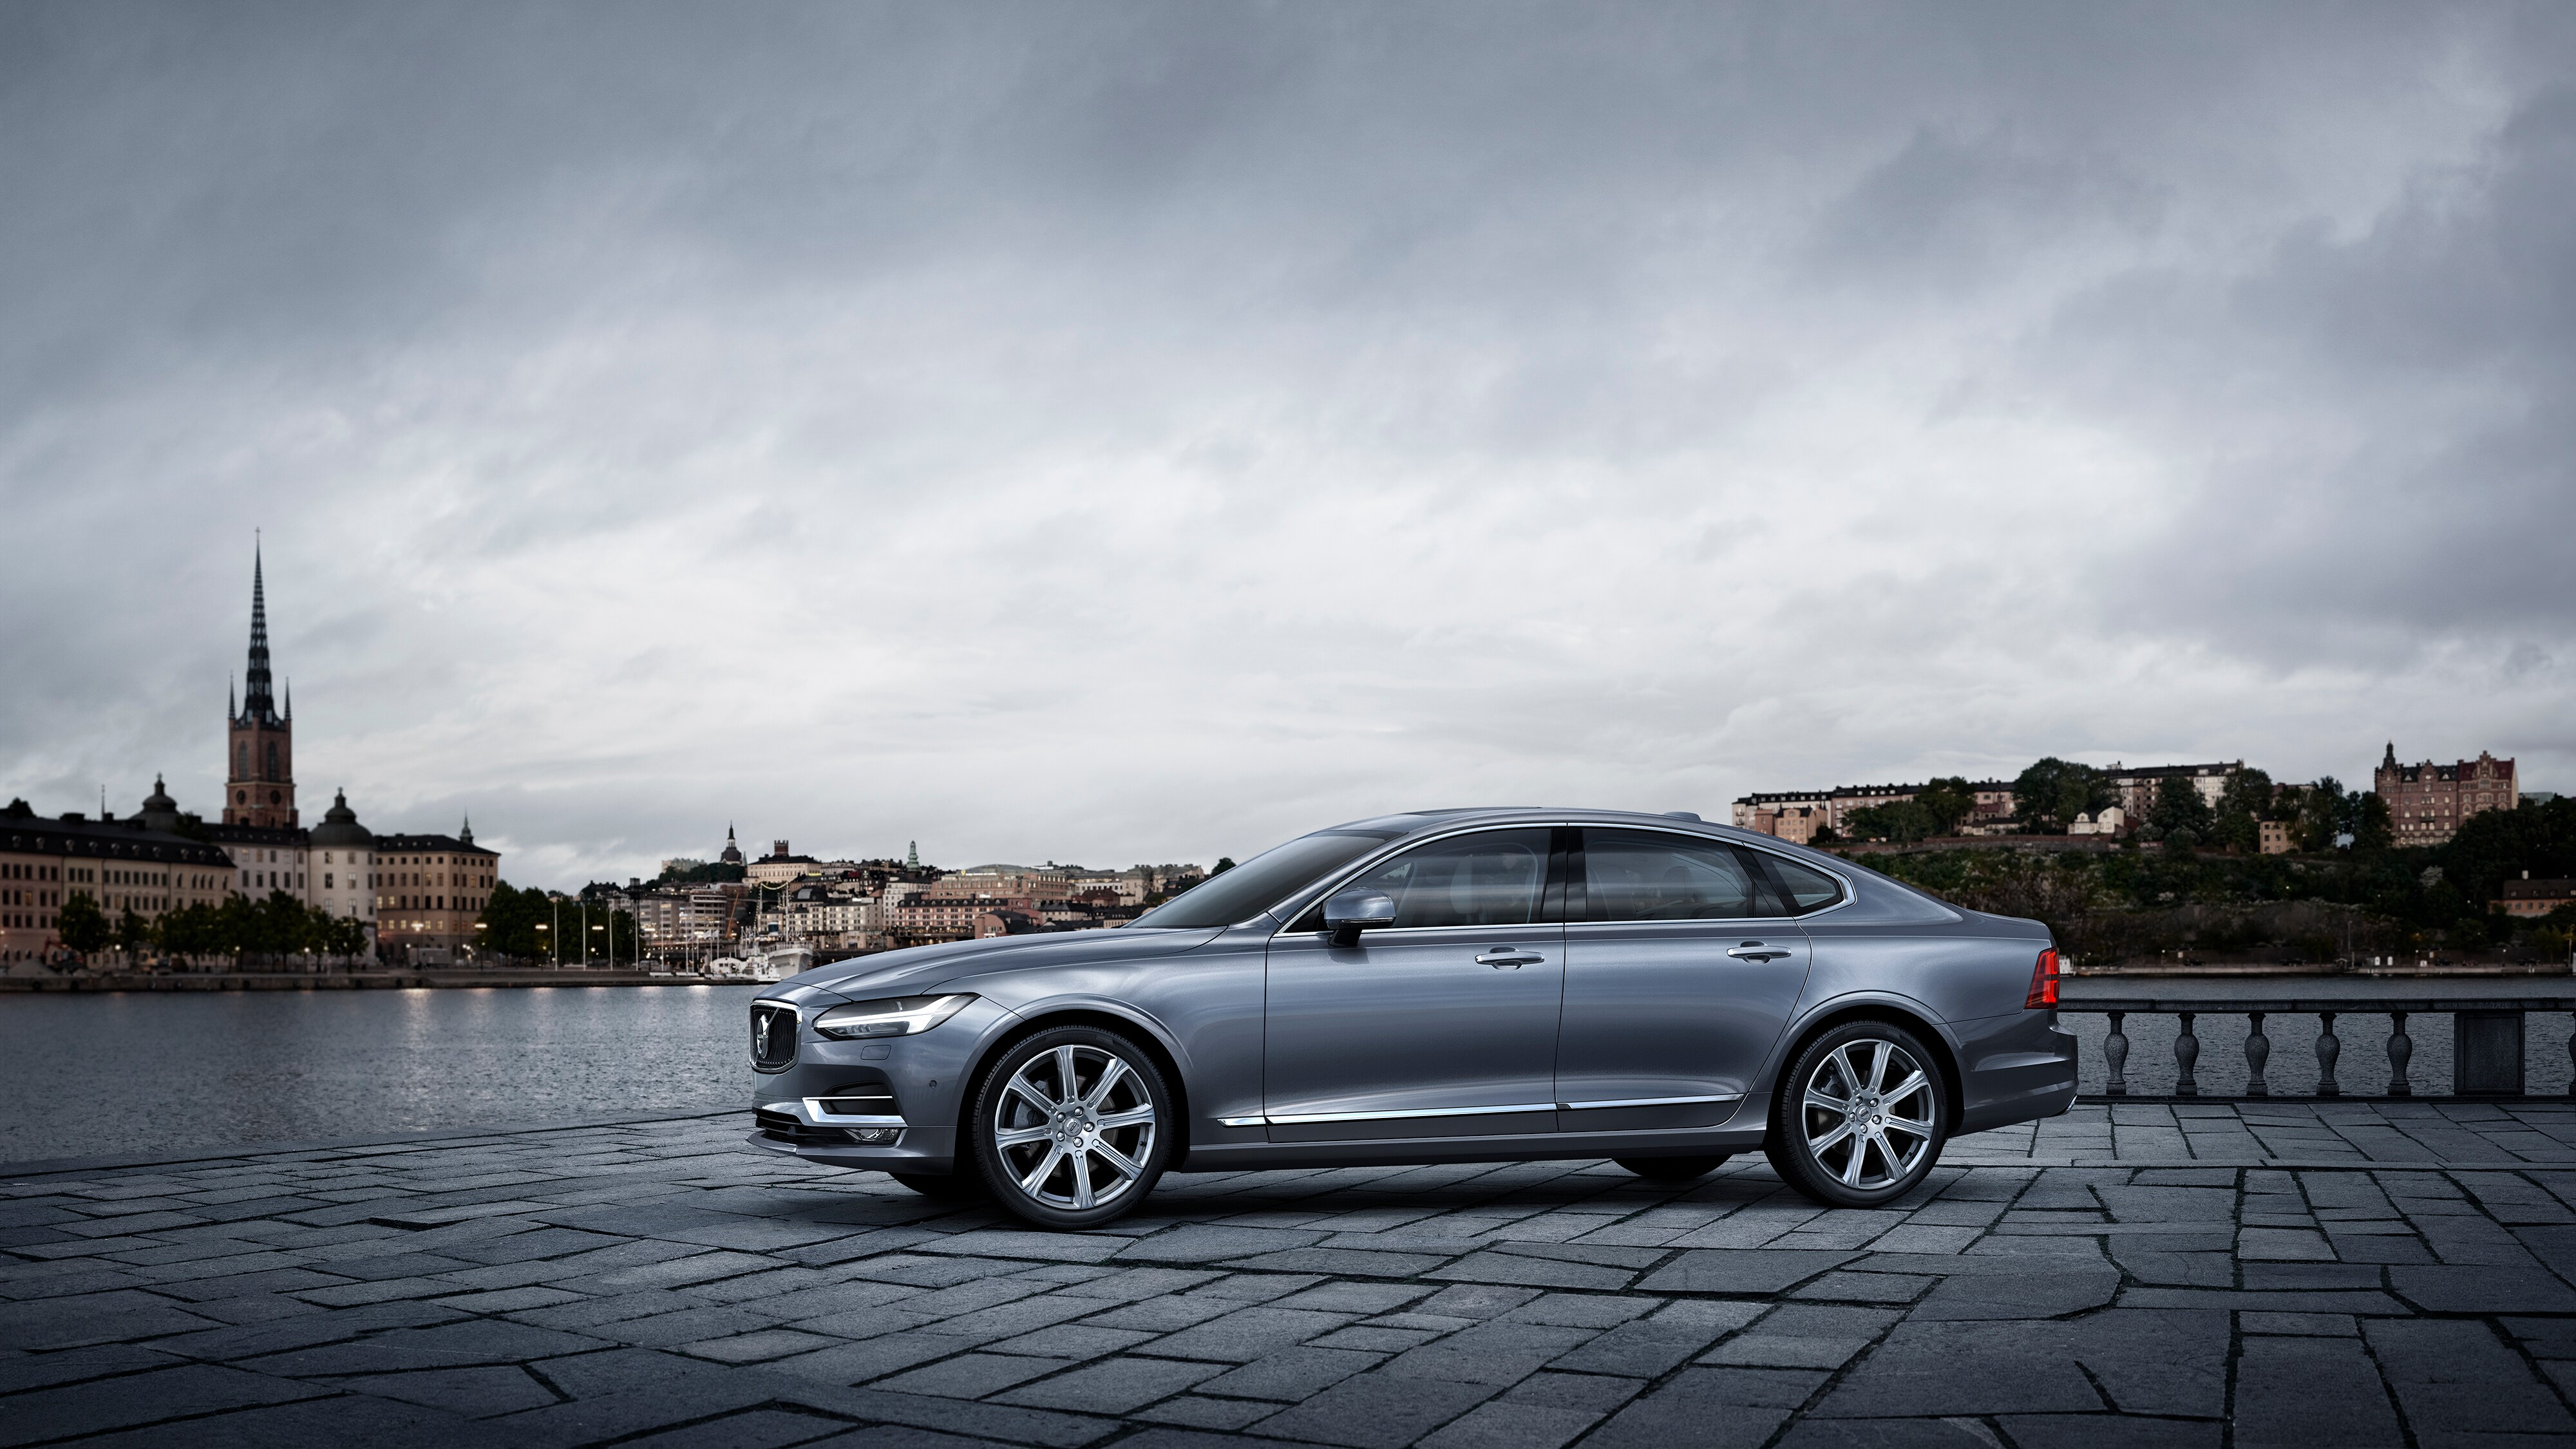 Side view of the Volvo S90 in metallic grey, parked next to a river in the city